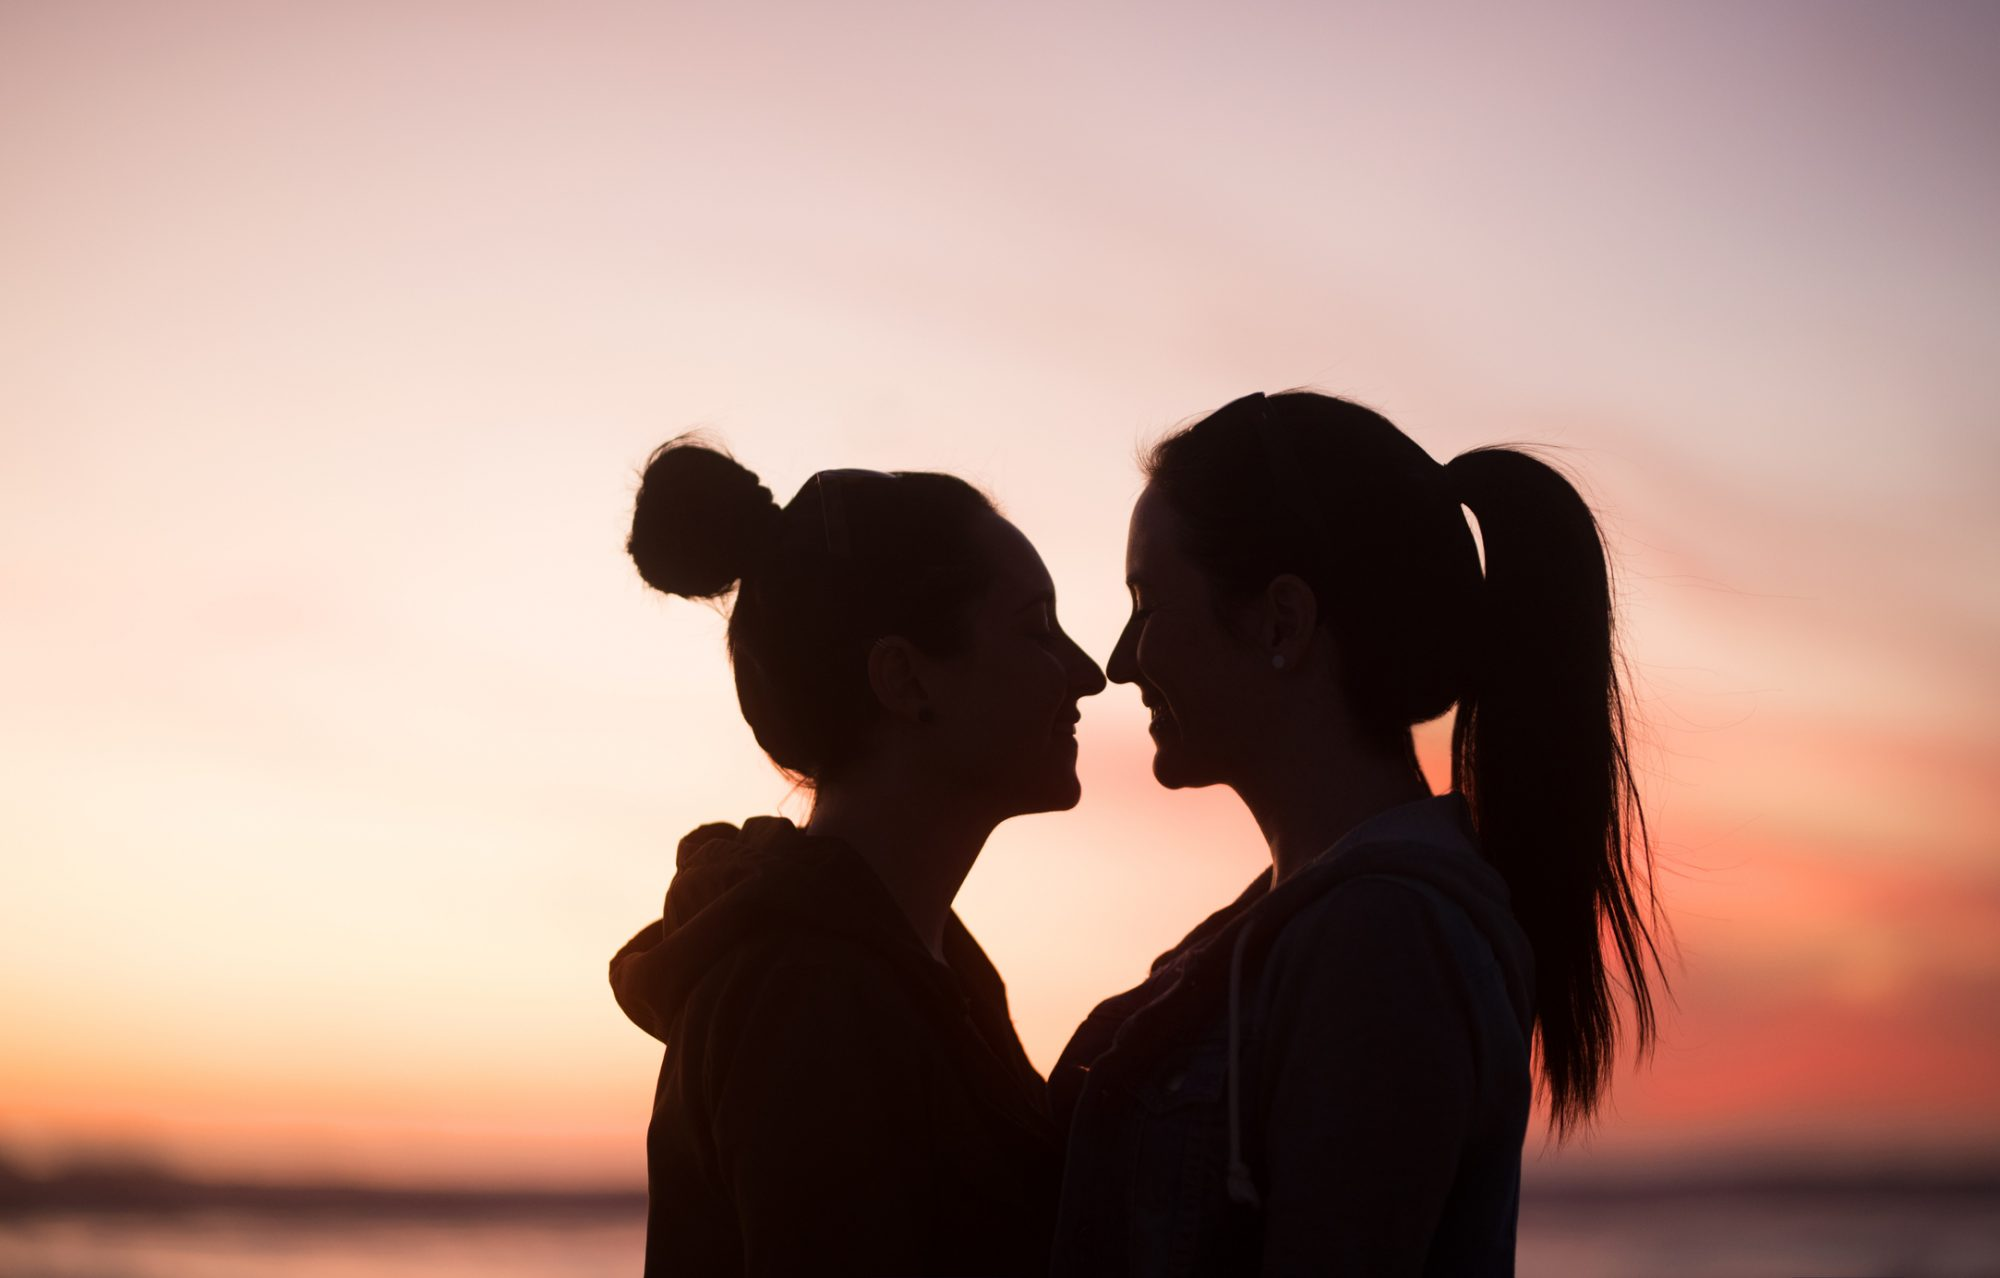 Outline of two young women standing very close to one another looking at each other at sunset